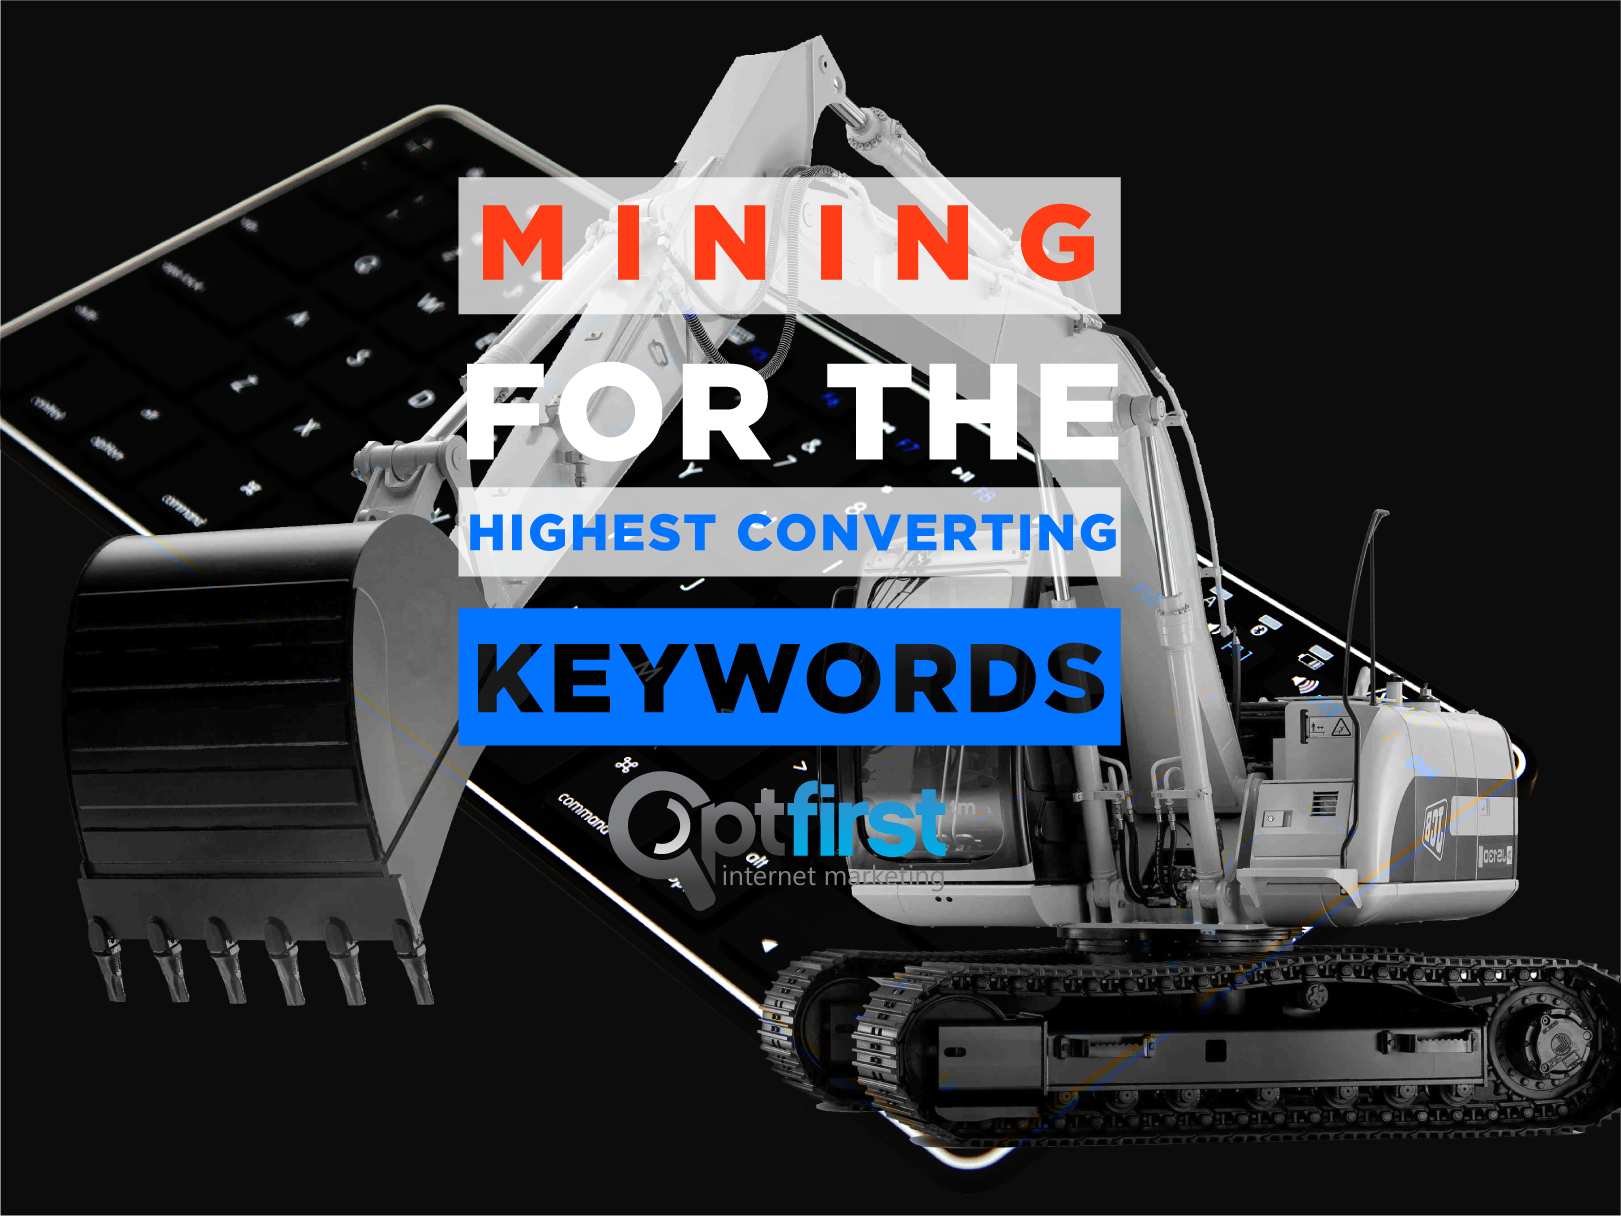 Mining for the Highest Converting Keywords